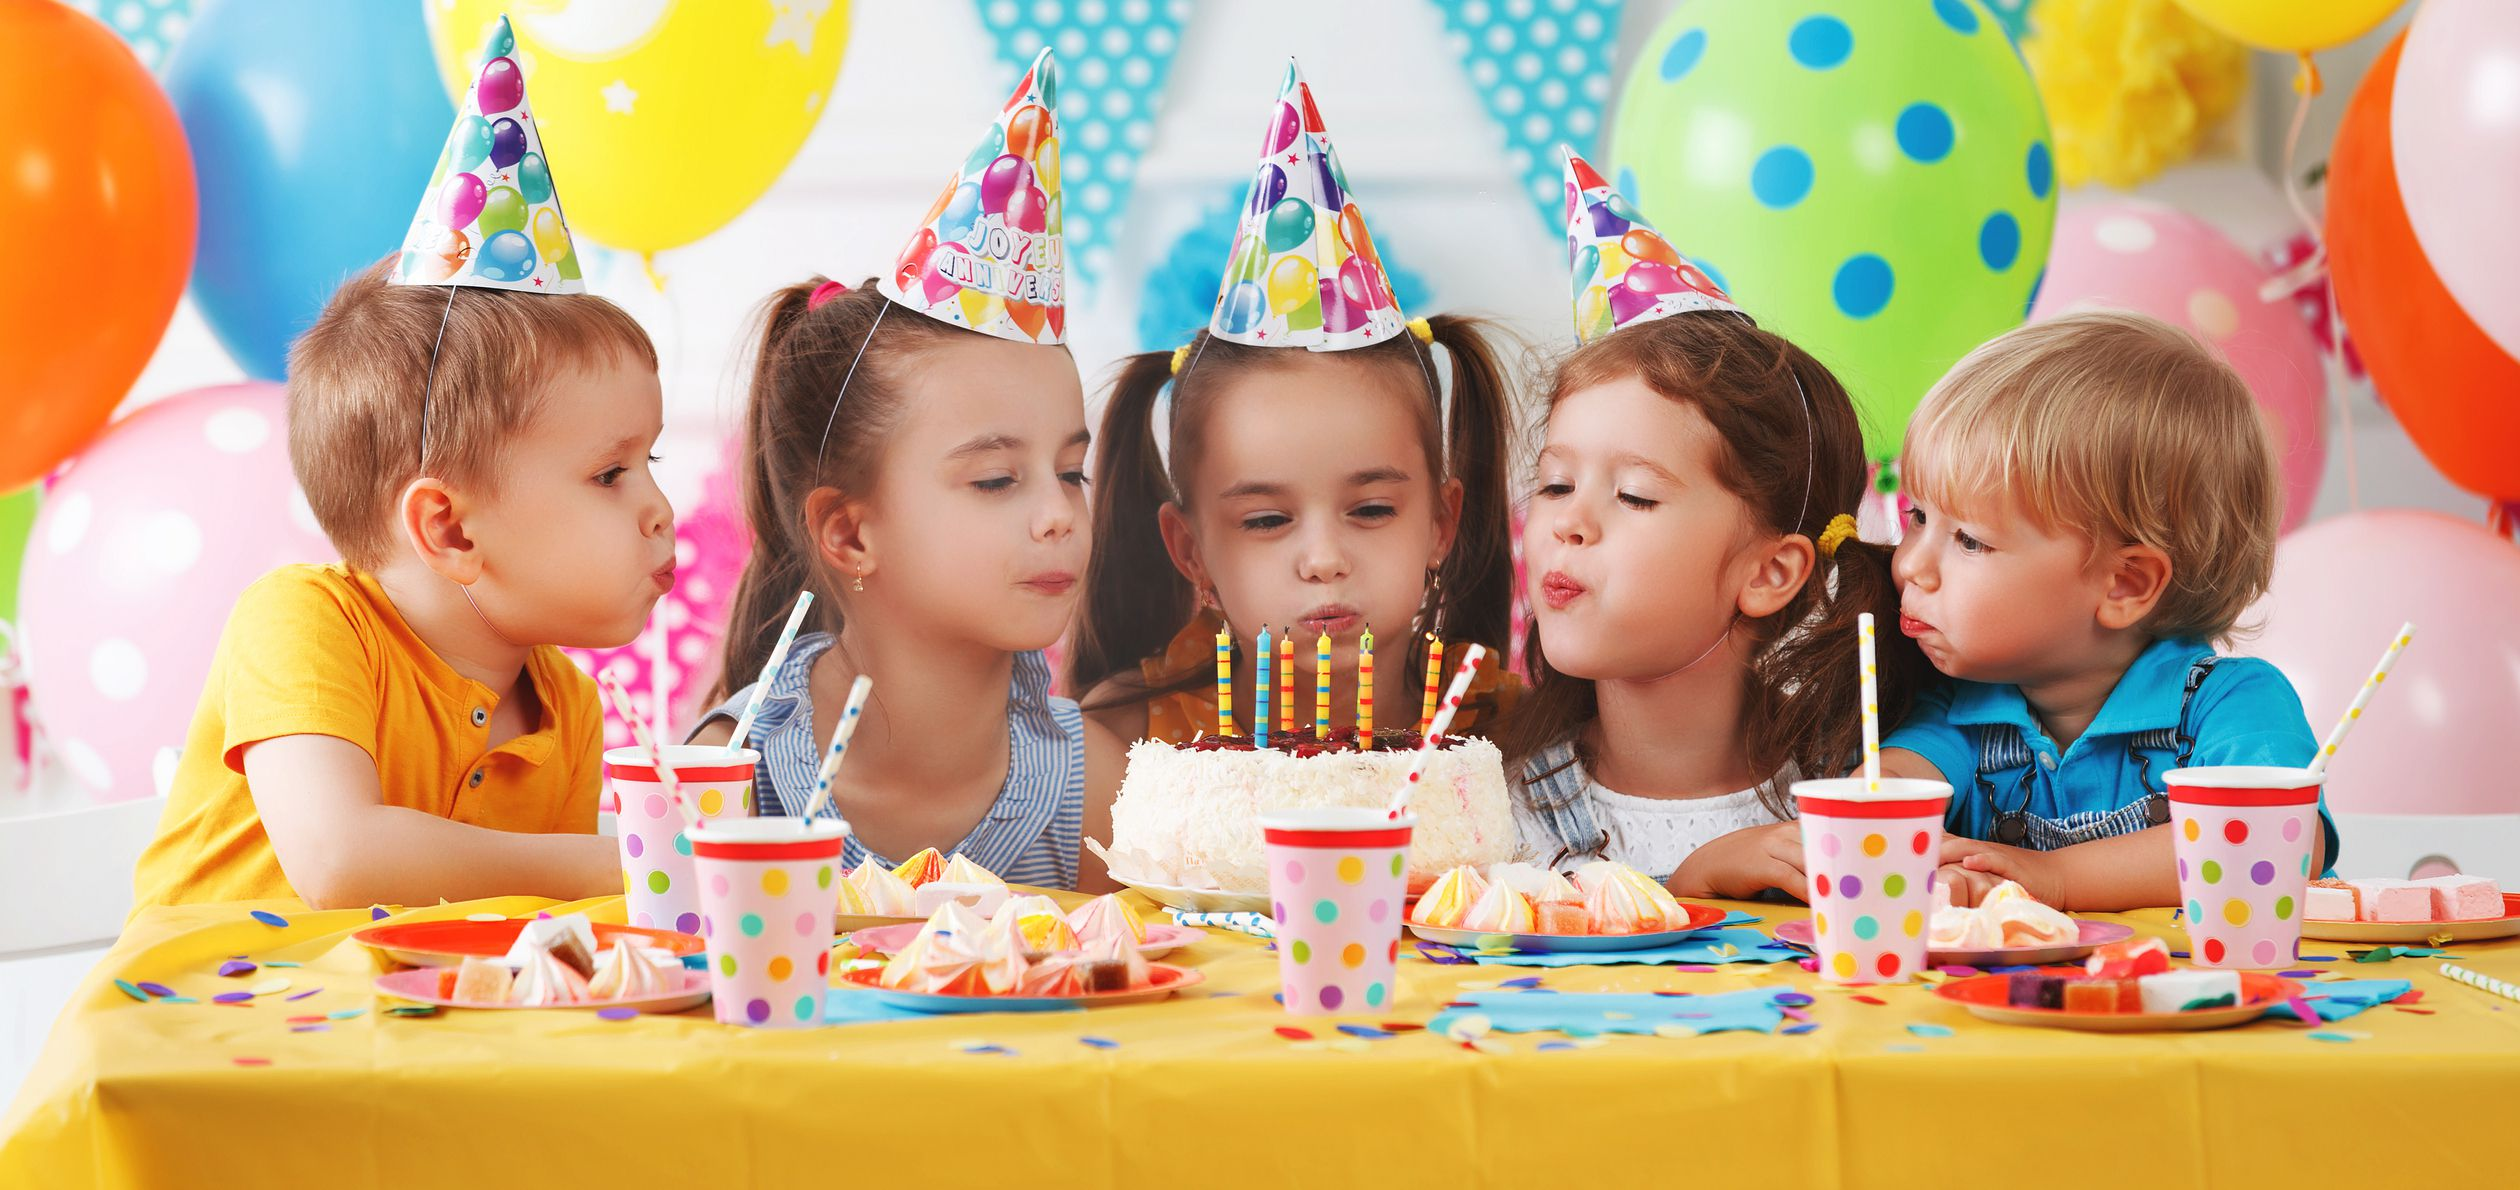 childrens-birthday-happy-kids-with-cake-royalty-free-image-1027350578-1553005949